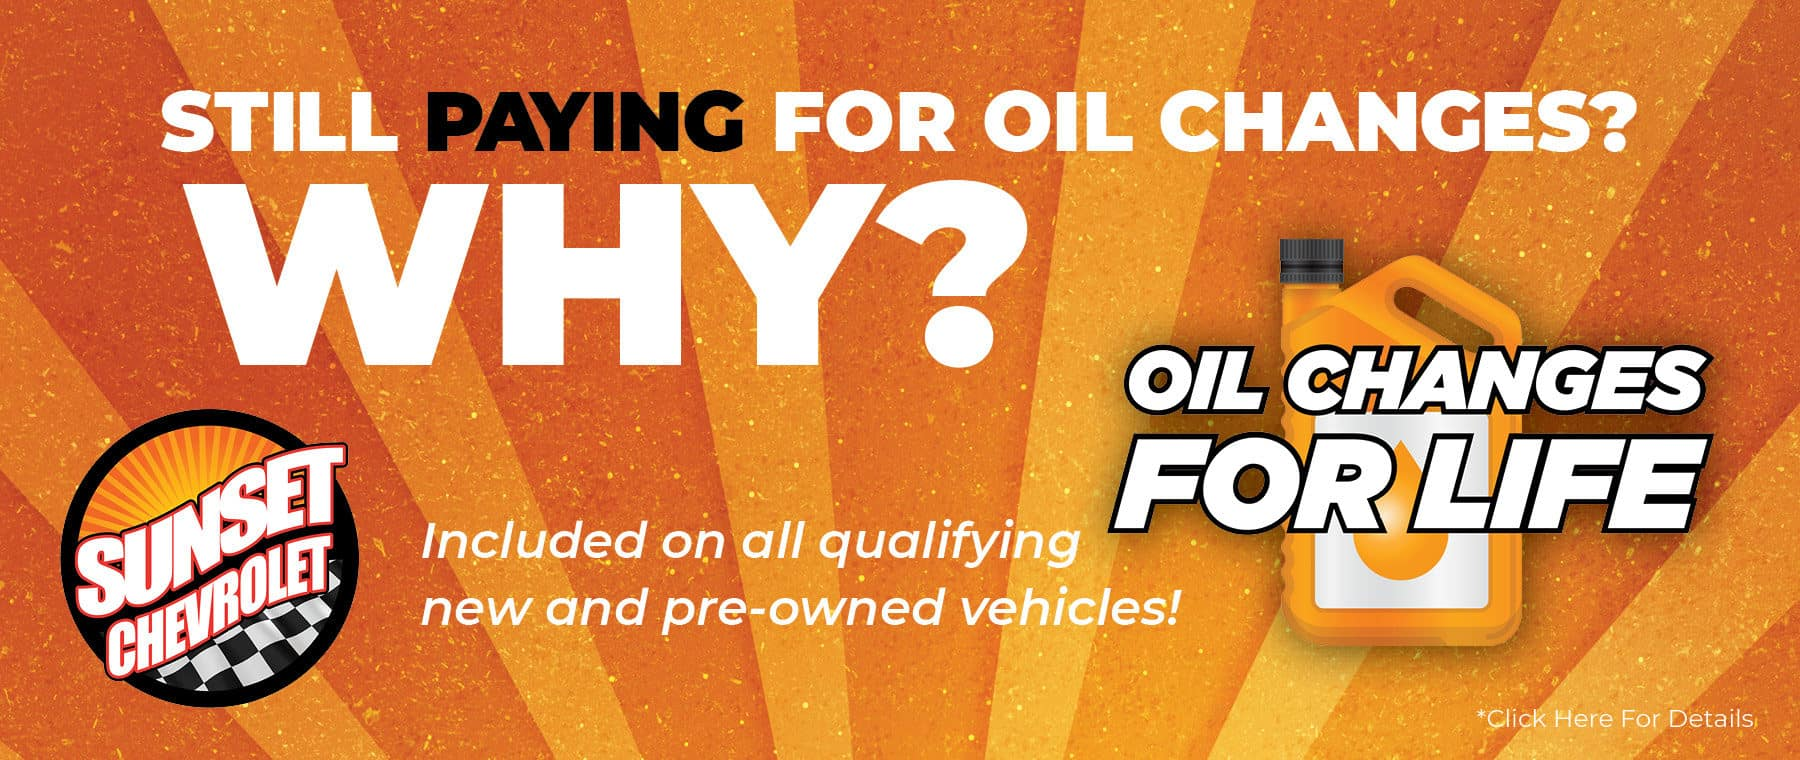 Still Paying For Oil Changes? Why? Sunset Includes OIl Changes For Life on all qualifying new and used vehicles